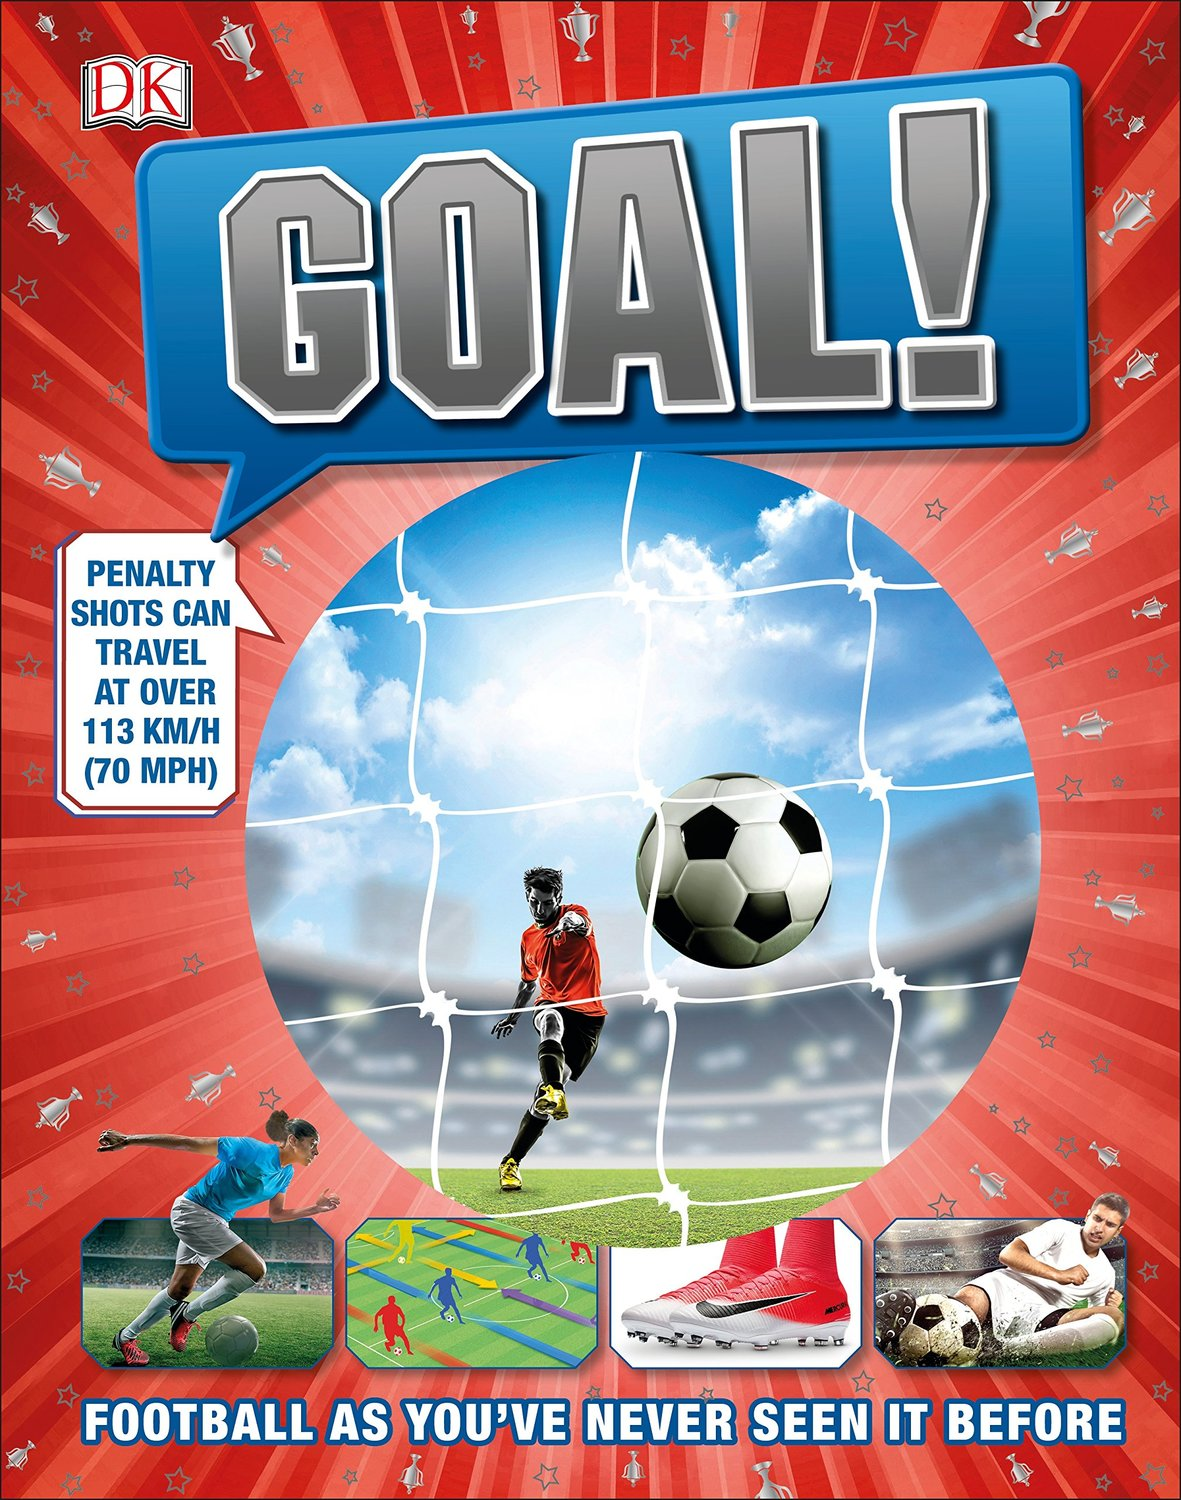 Football Themed Recommended Reads Image 5